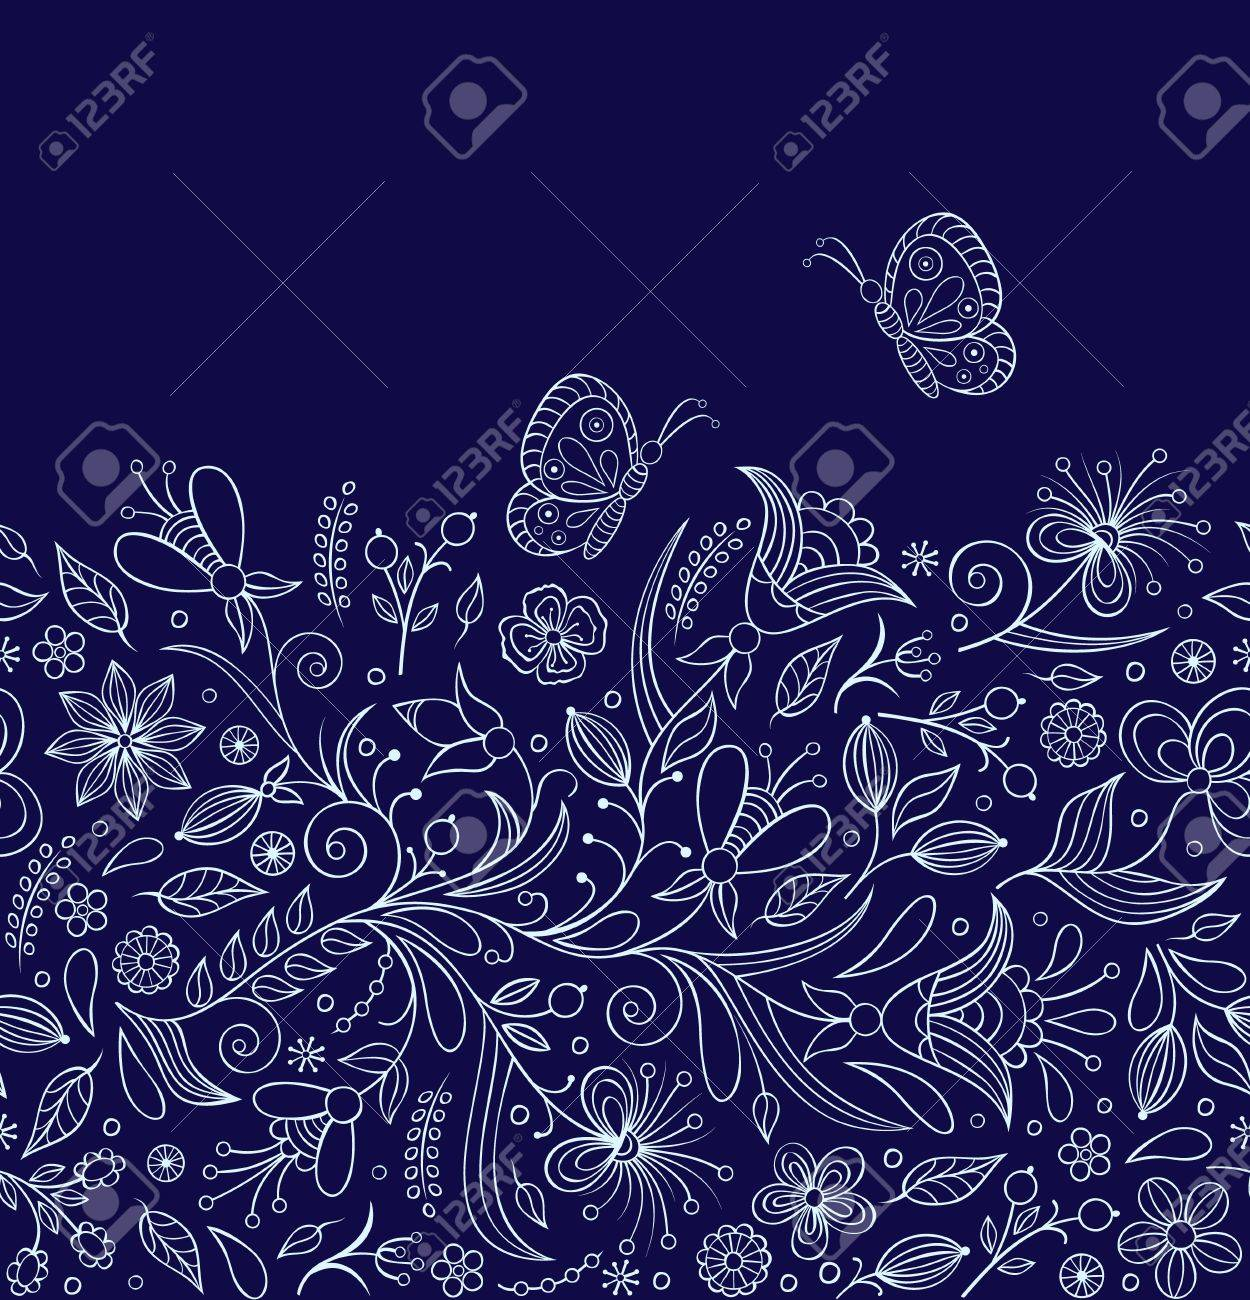 seamless pattern with abstract flowers.Floral background Stock Vector - 17117516